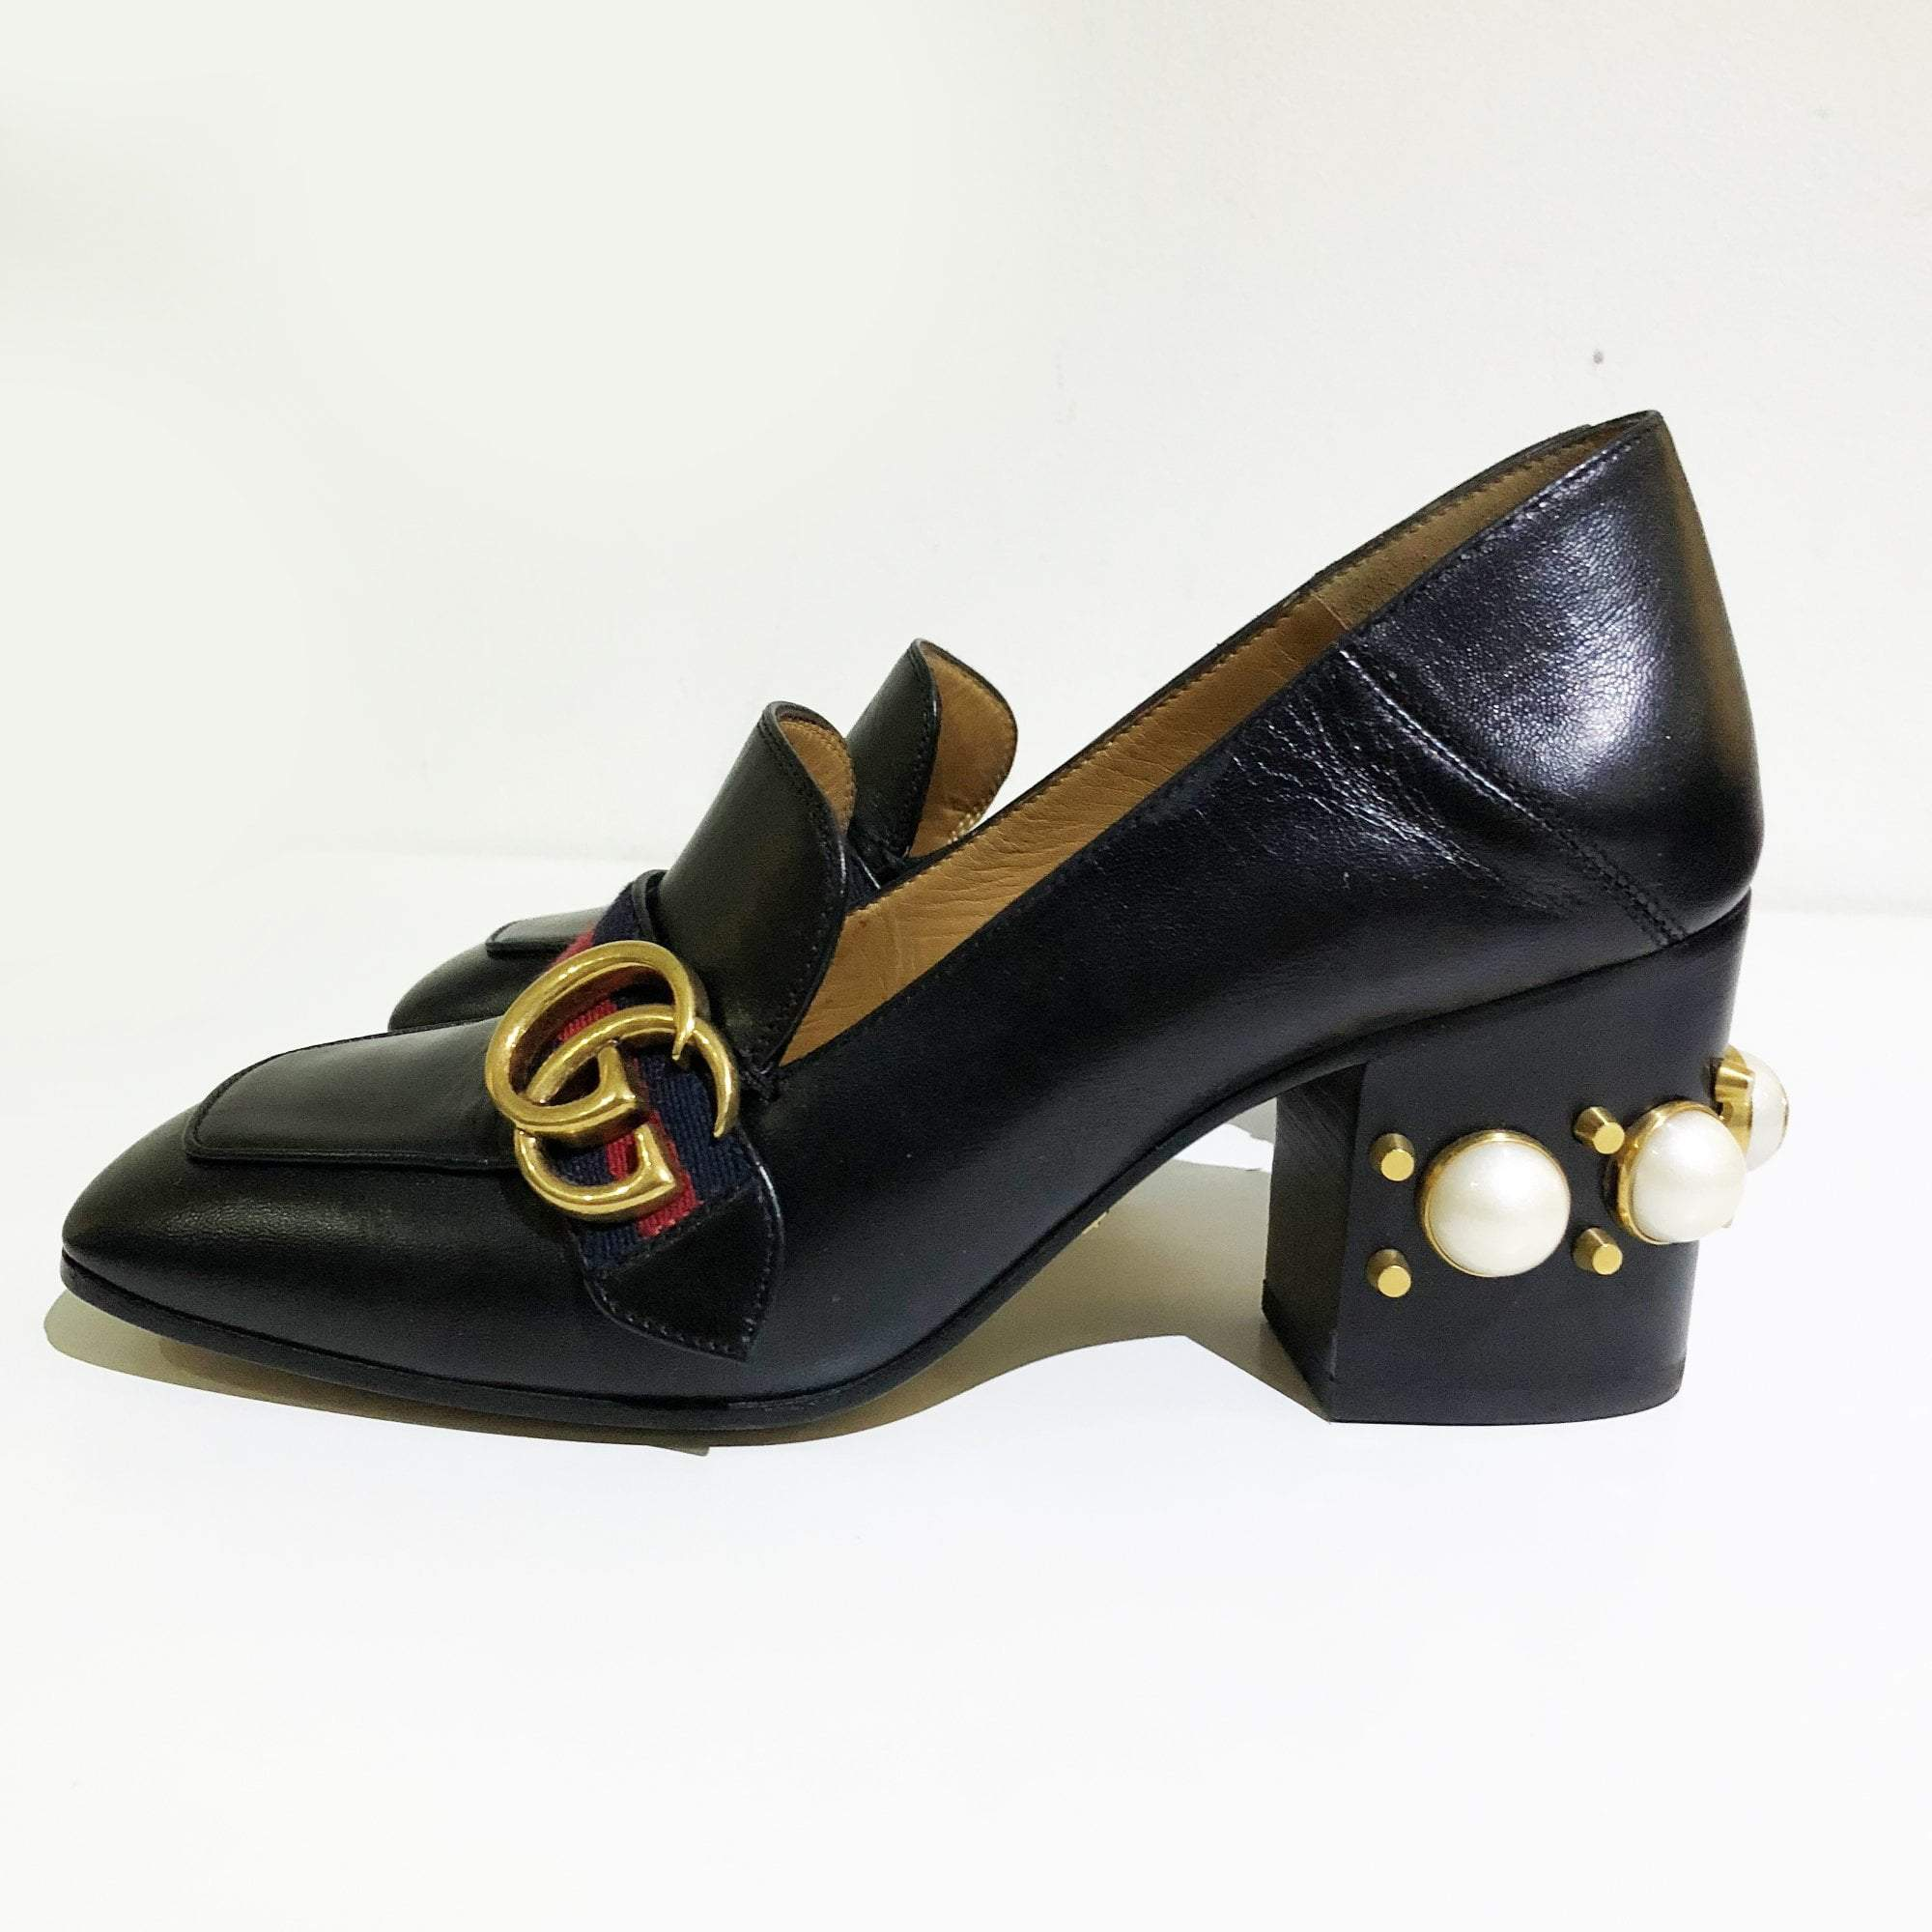 Gucci Peyton Leather Pumps